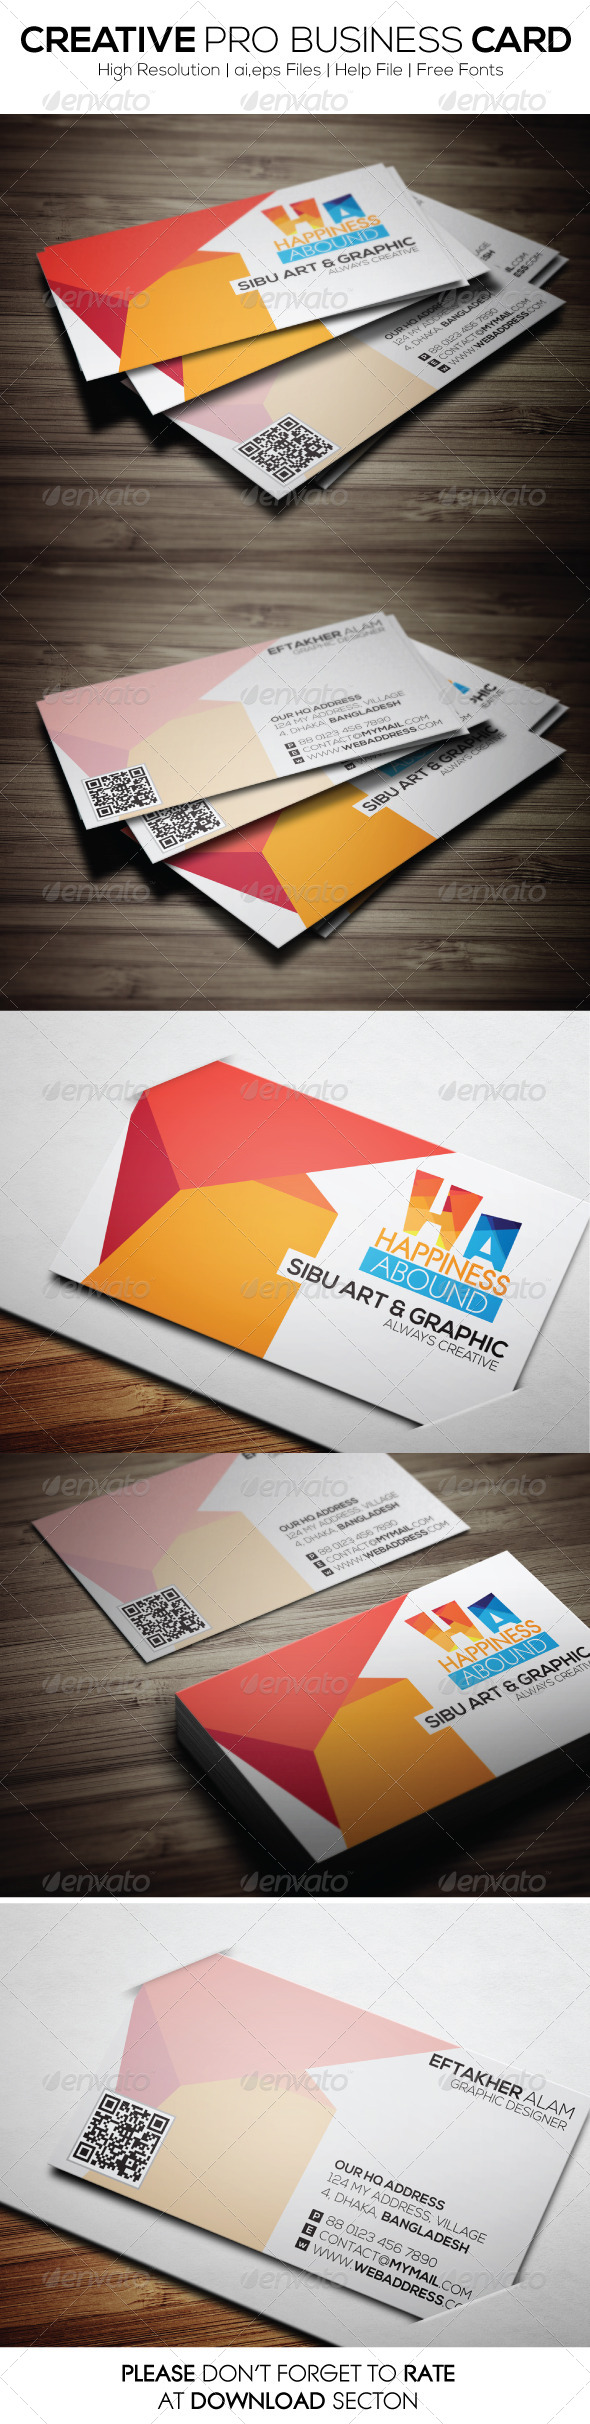 GraphicRiver Creative Pro Business Card 6499567